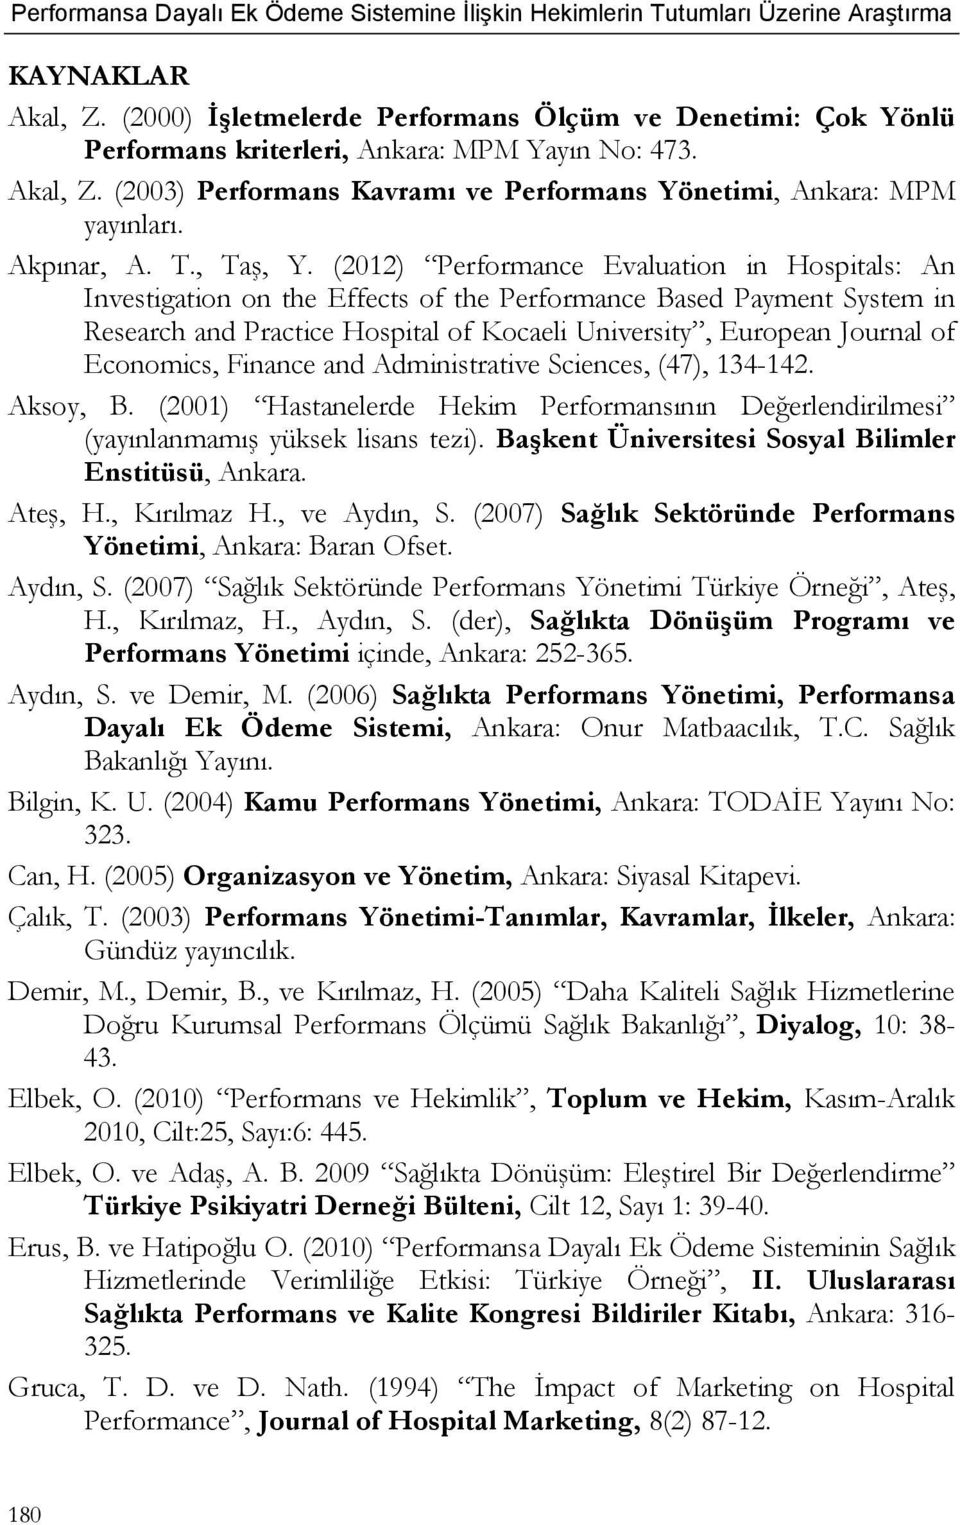 (2012) Performance Evaluation in Hospitals: An Investigation on the Effects of the Performance Based Payment System in Research and Practice Hospital of Kocaeli University, European Journal of